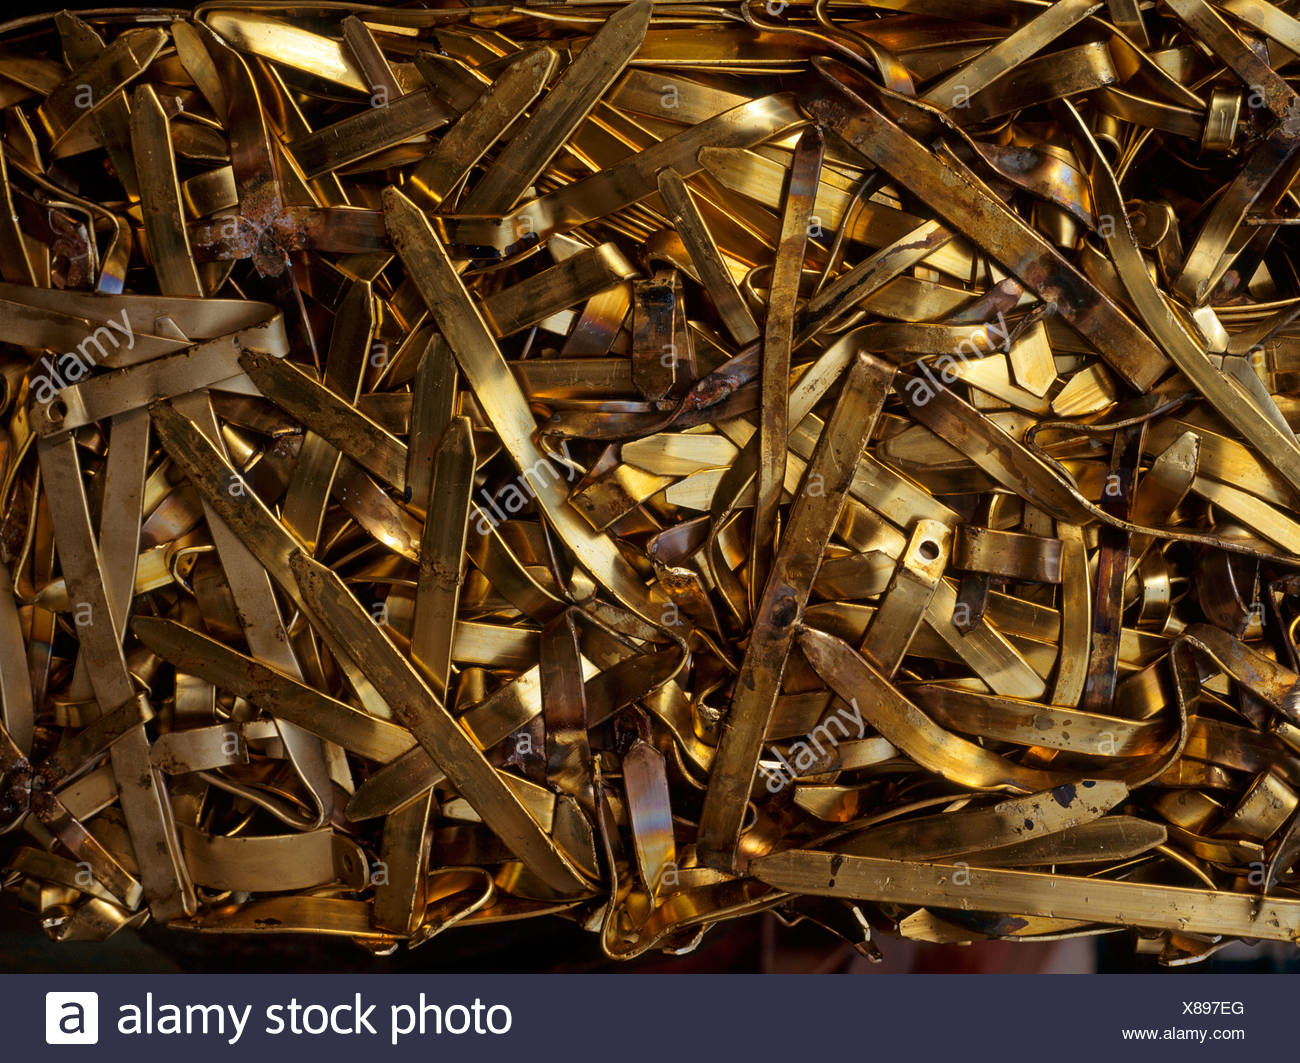 Bronze metal compressed prior to recycling North Wales UK - Stock Image